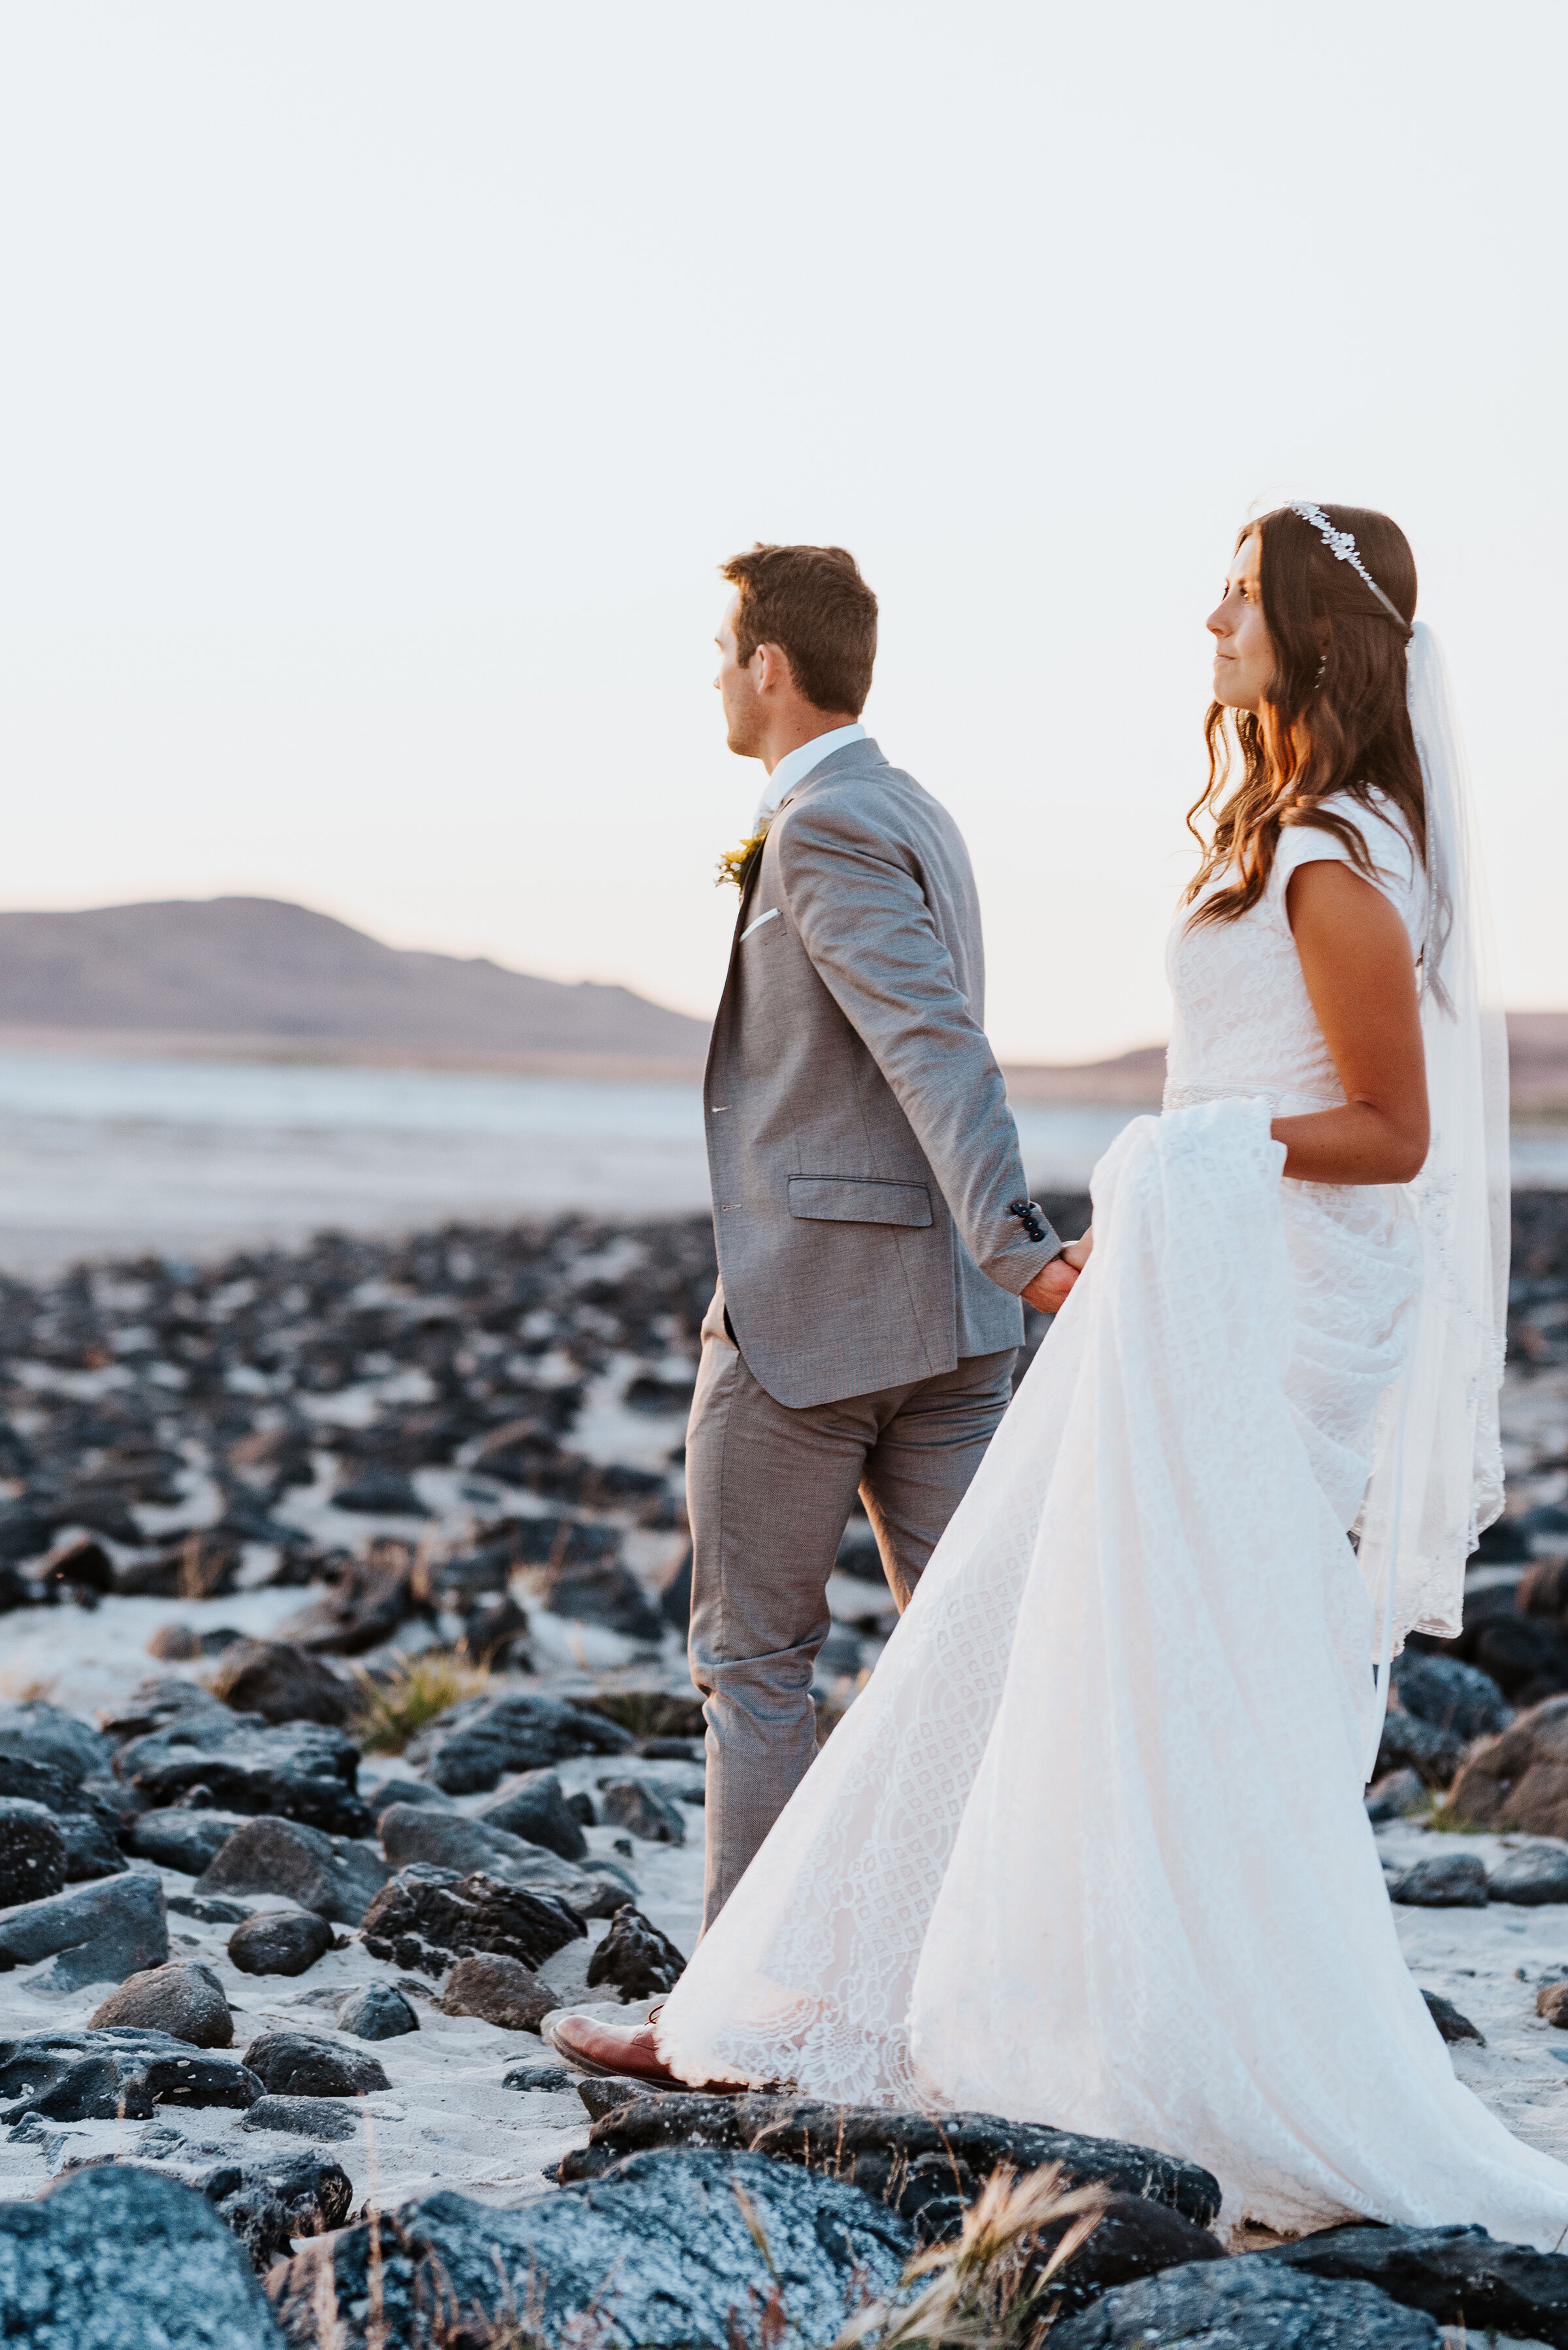 The bride and groom holding hands walking along the rocky shore of the Spiral Jetty in Northern Utah for their wedding formal session. #spiraljetty #GreatSaltLake #formalsession #SaltFlats #sunsetphotosession #NorthernUtah #weddingphotographer #formalphotographer #brideandgroom #outdoorformals #weddingformalphotography